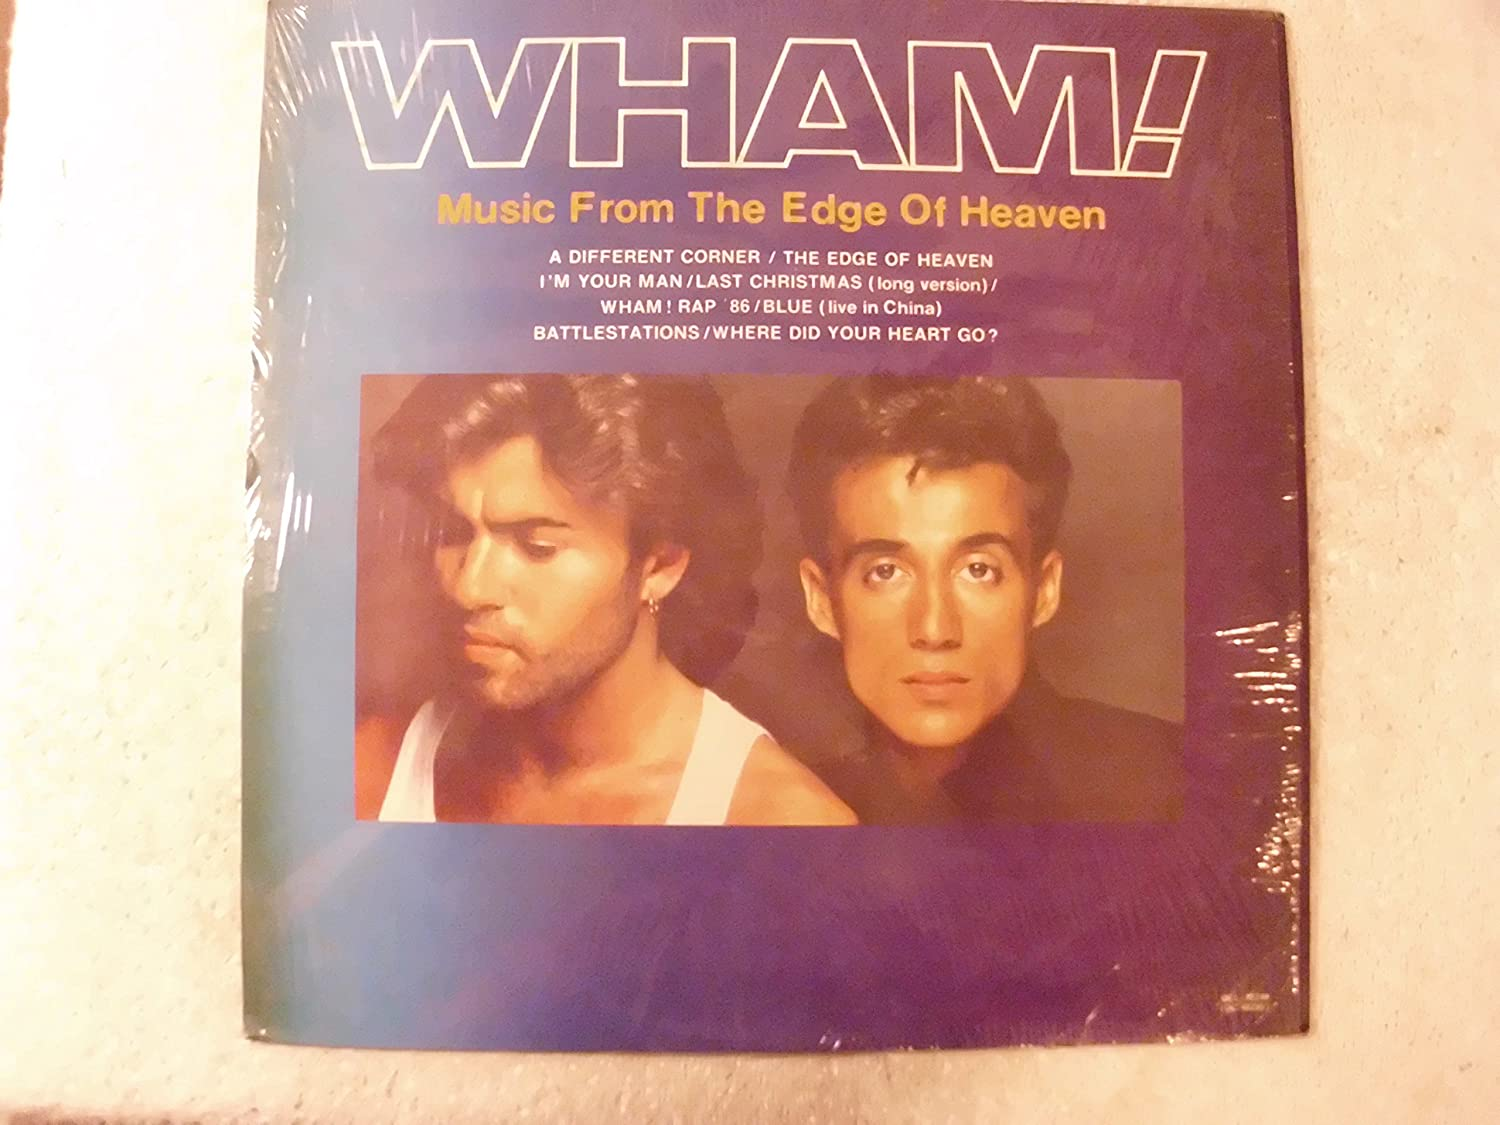 Whm - Music From The Edge Of Heaven Philippines Import LP